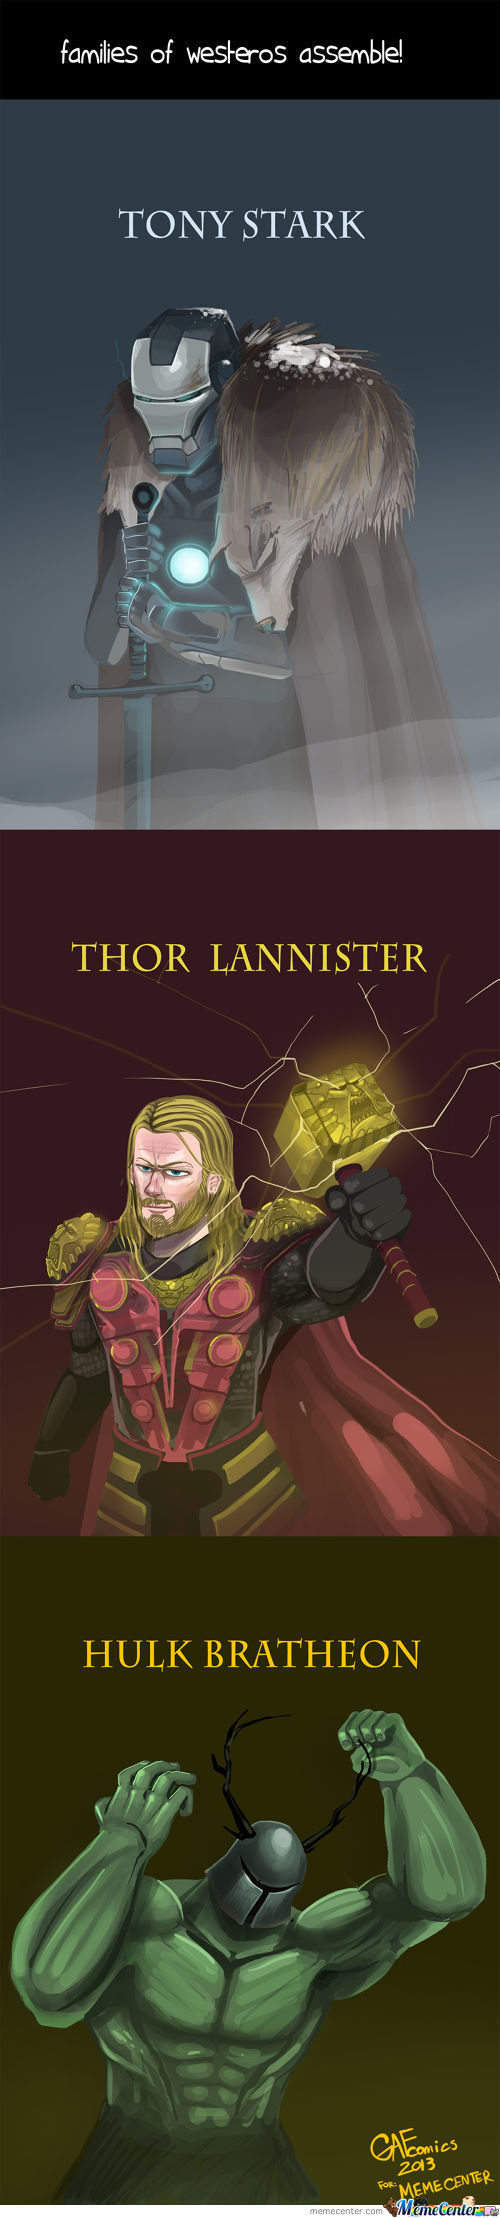 Families Of Westeros Assemble!